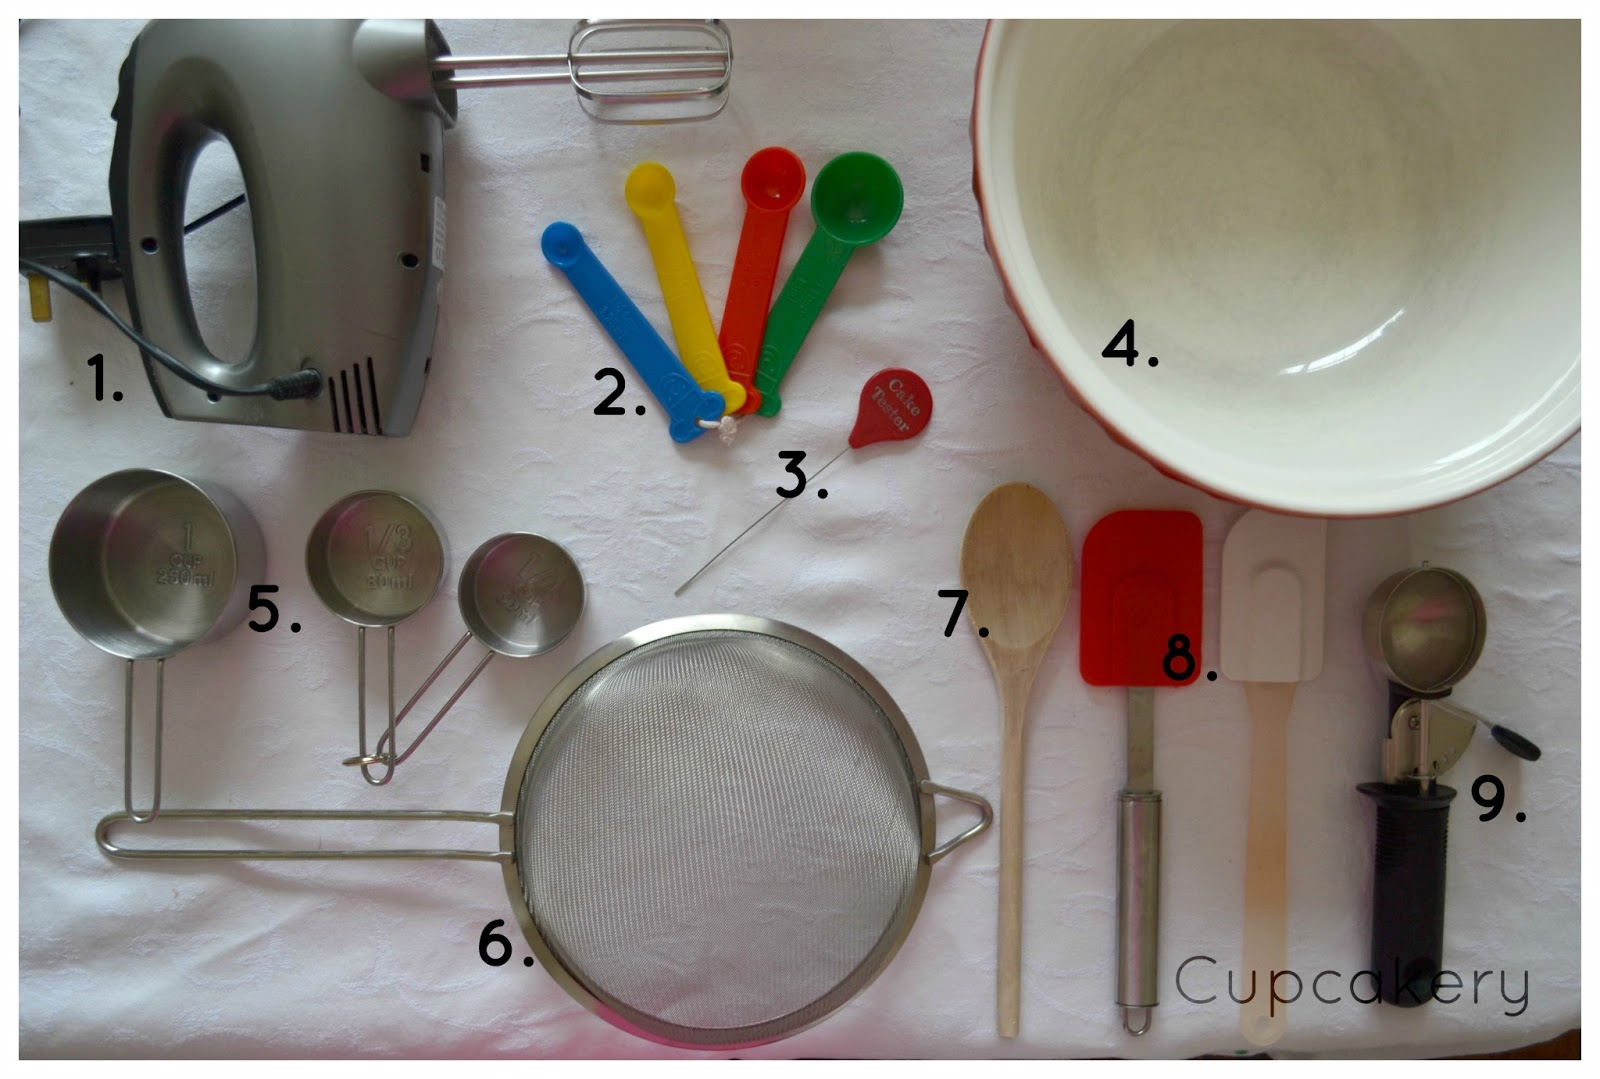 Cupcakery: Cupcake Baking Equipment 101